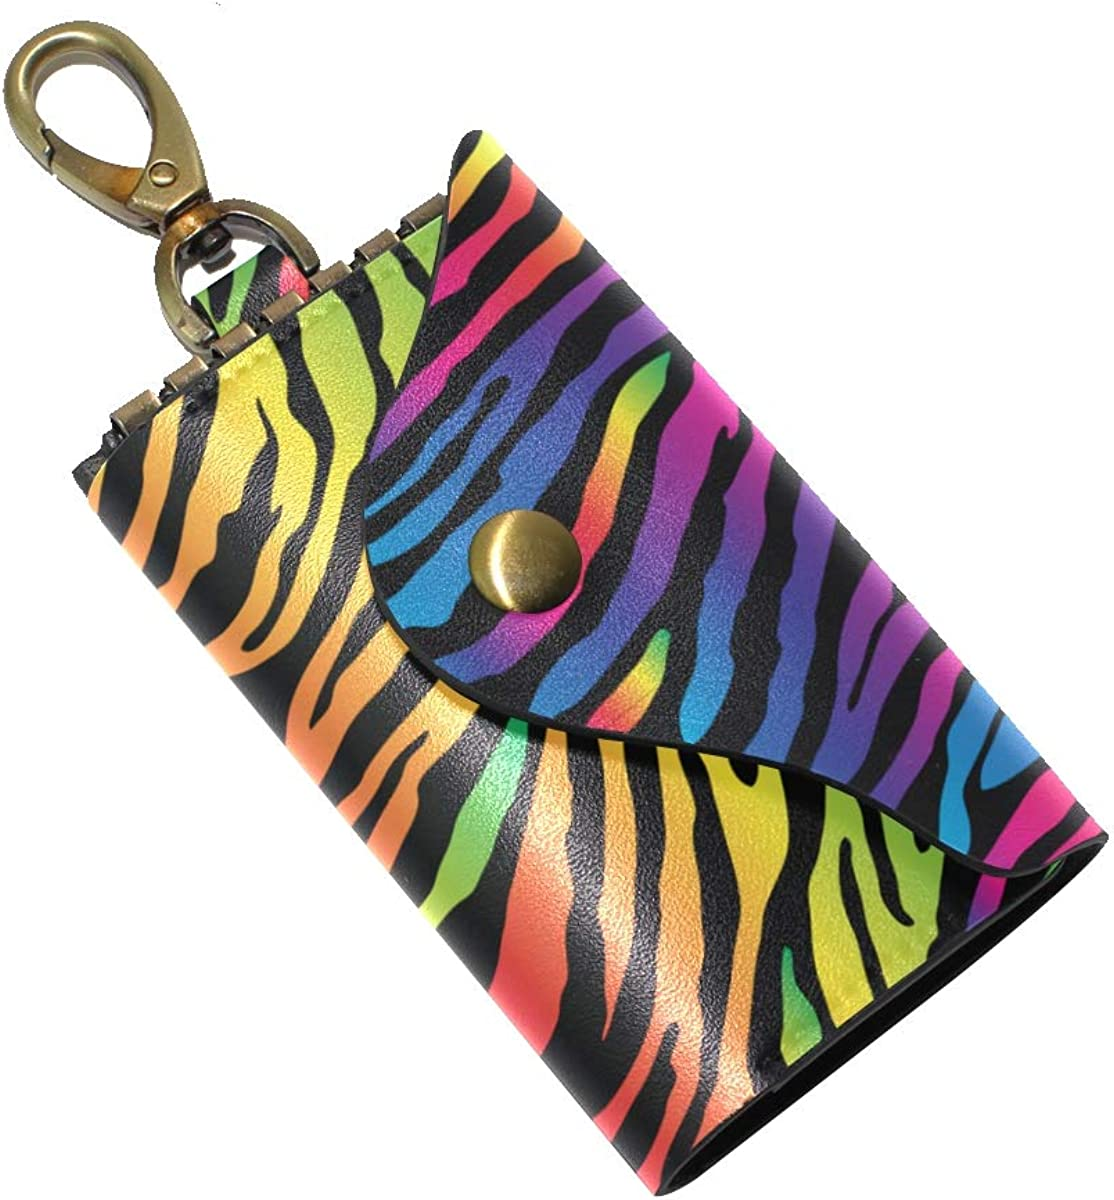 KEAKIA Rainbow Zebra Print Leather Key Case Wallets Tri-fold Key Holder Keychains with 6 Hooks 2 Slot Snap Closure for Men Women